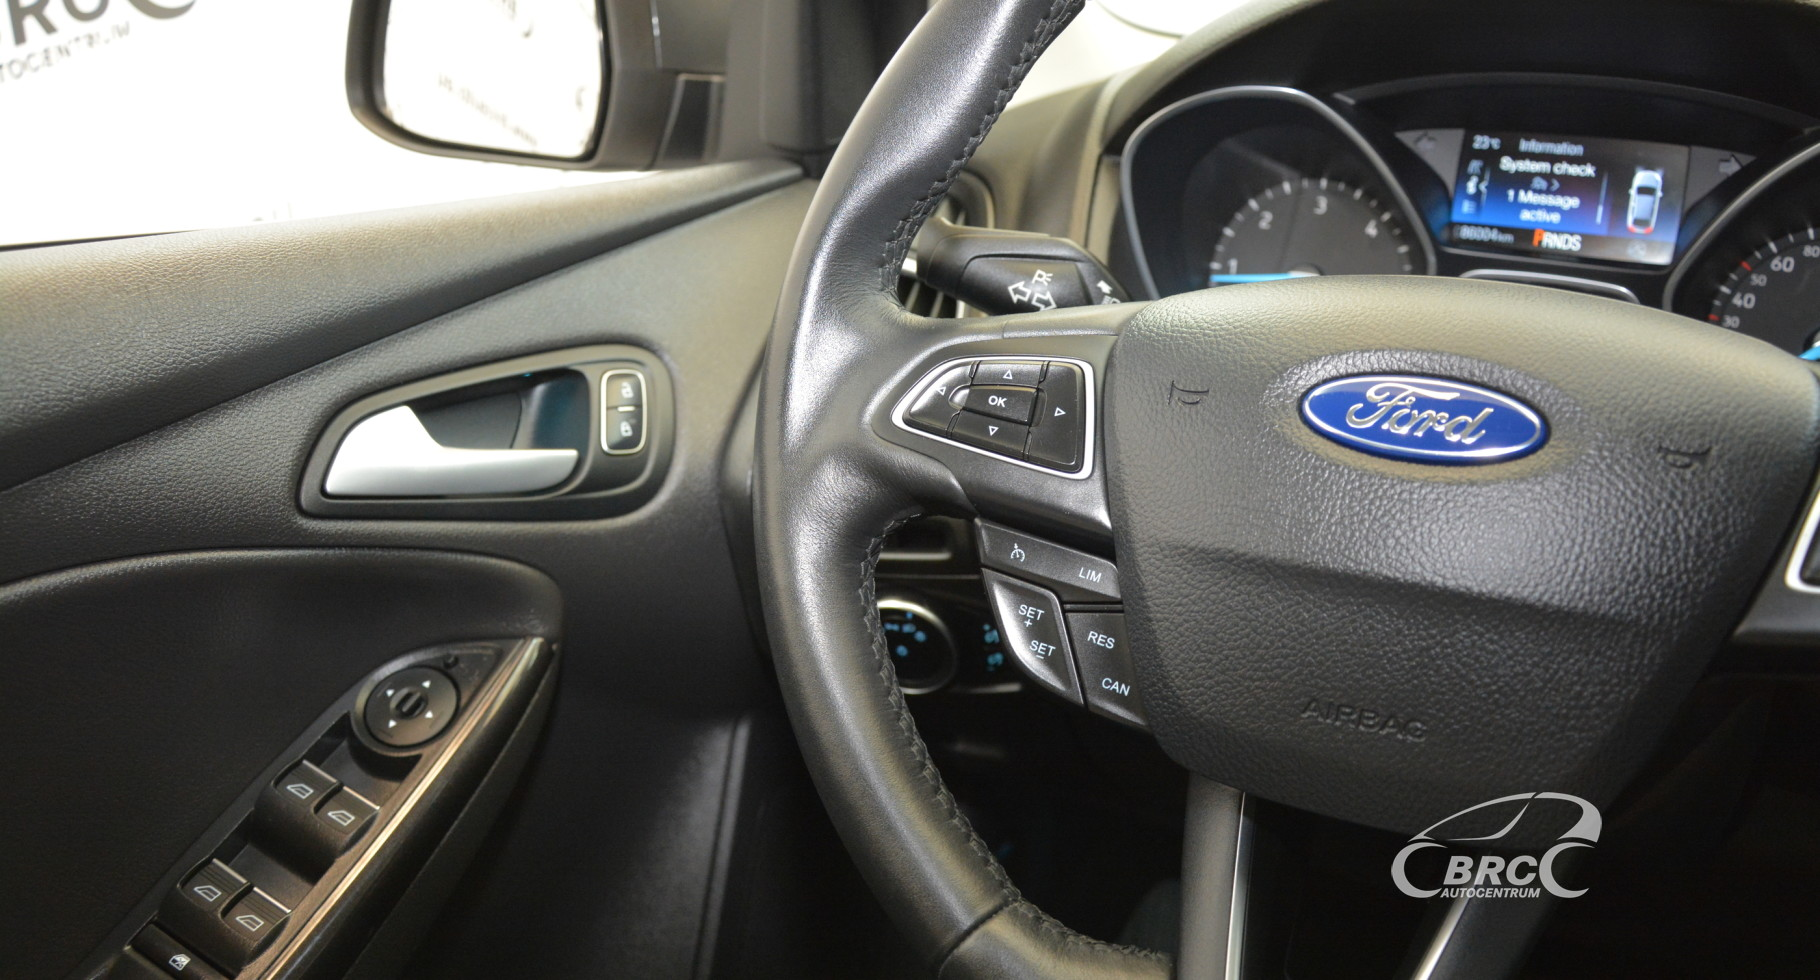 Ford Focus 2 0 TDCi Business Edition+PowerShift